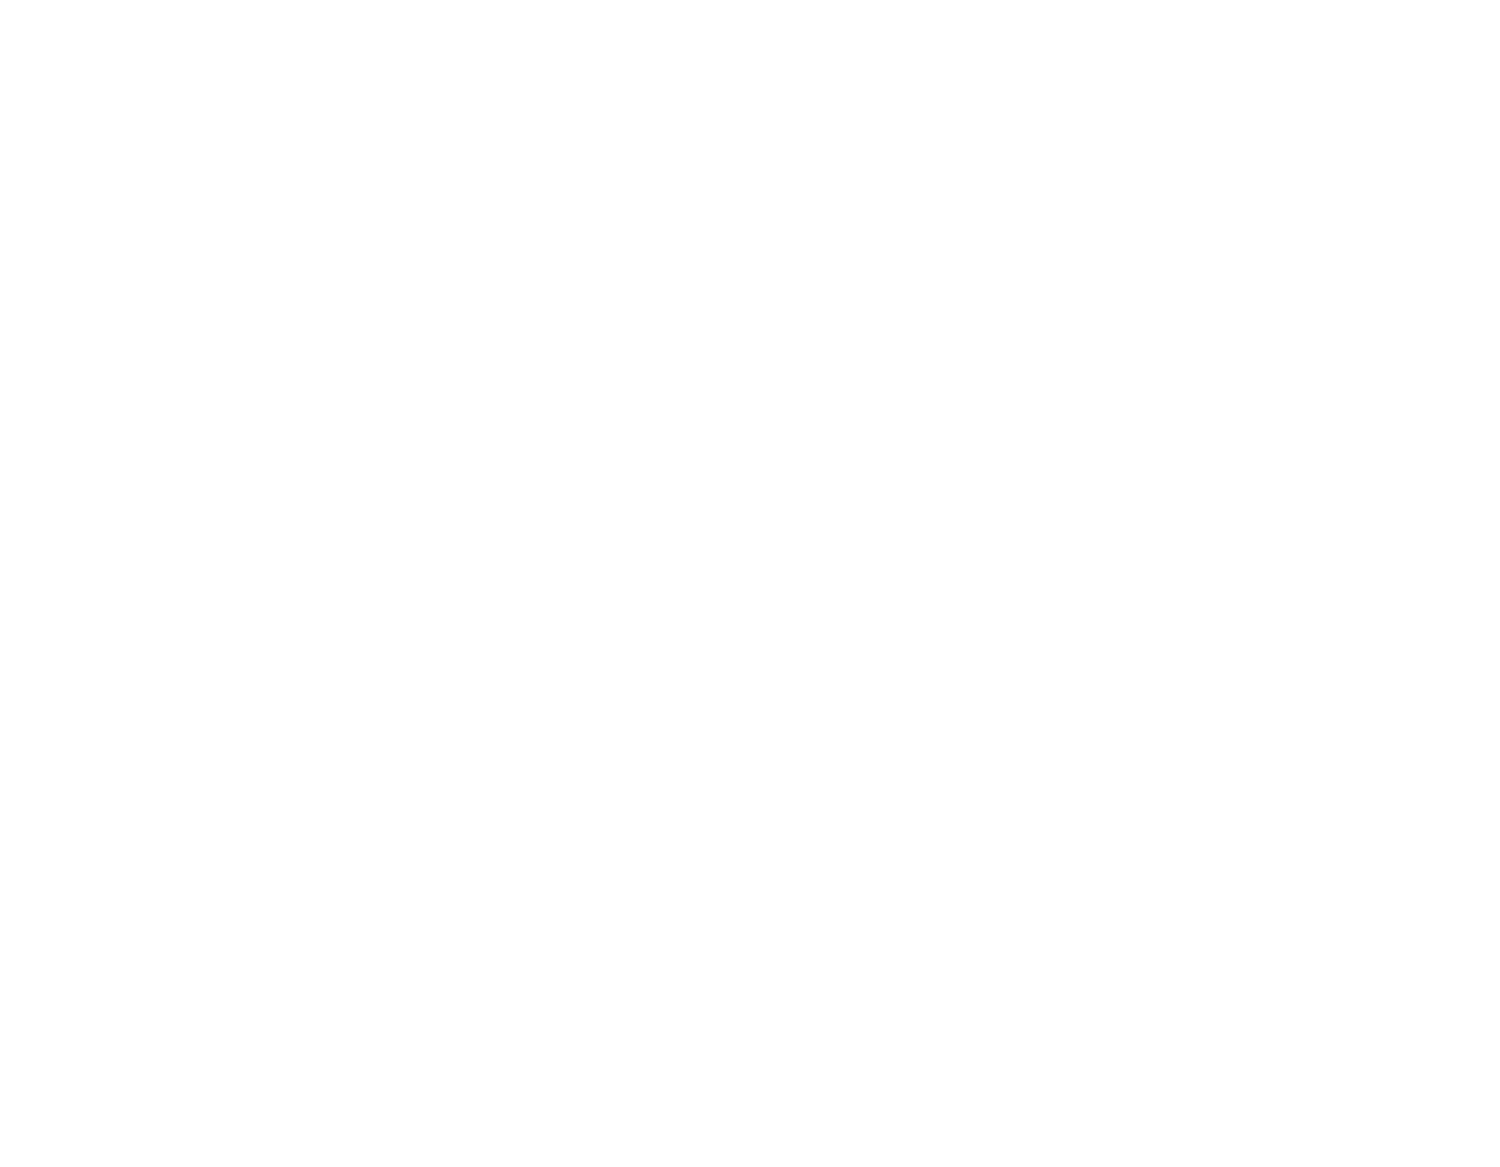 Vital North Creative